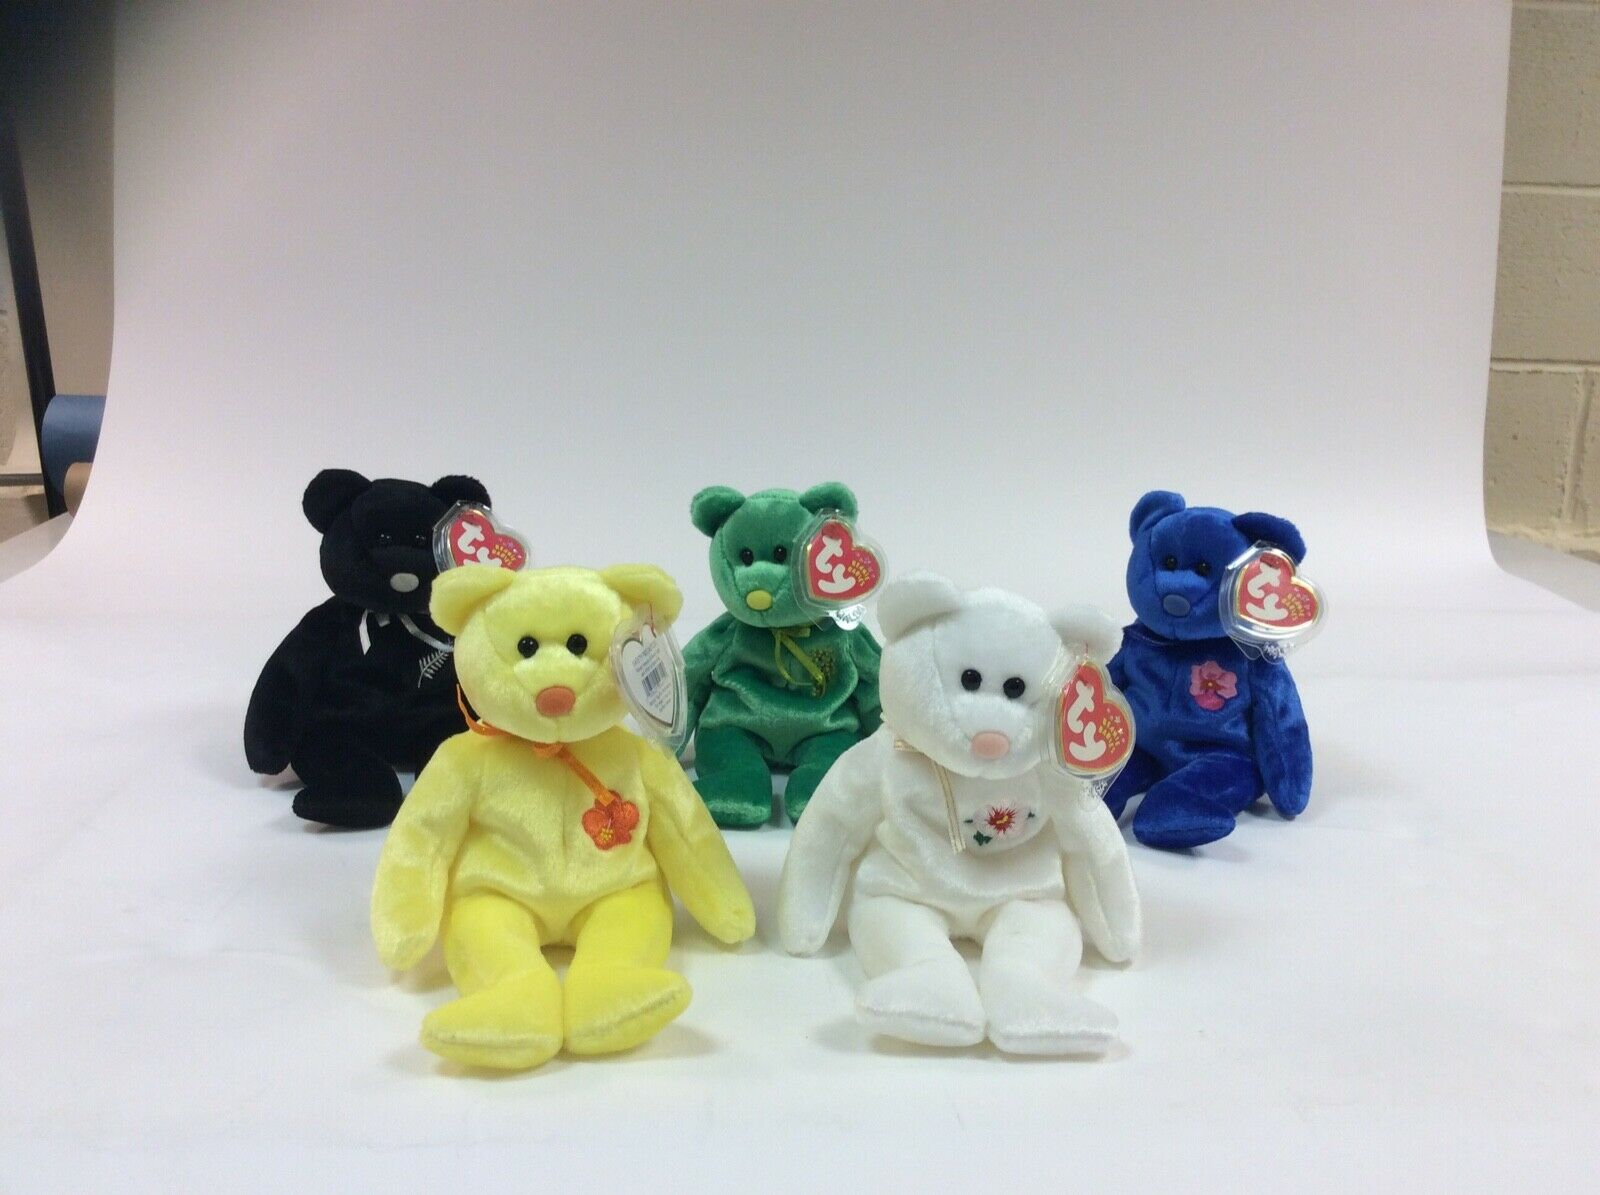 Set of 5 Asia Pacific ty beanie babies new with ear tags and felt noses